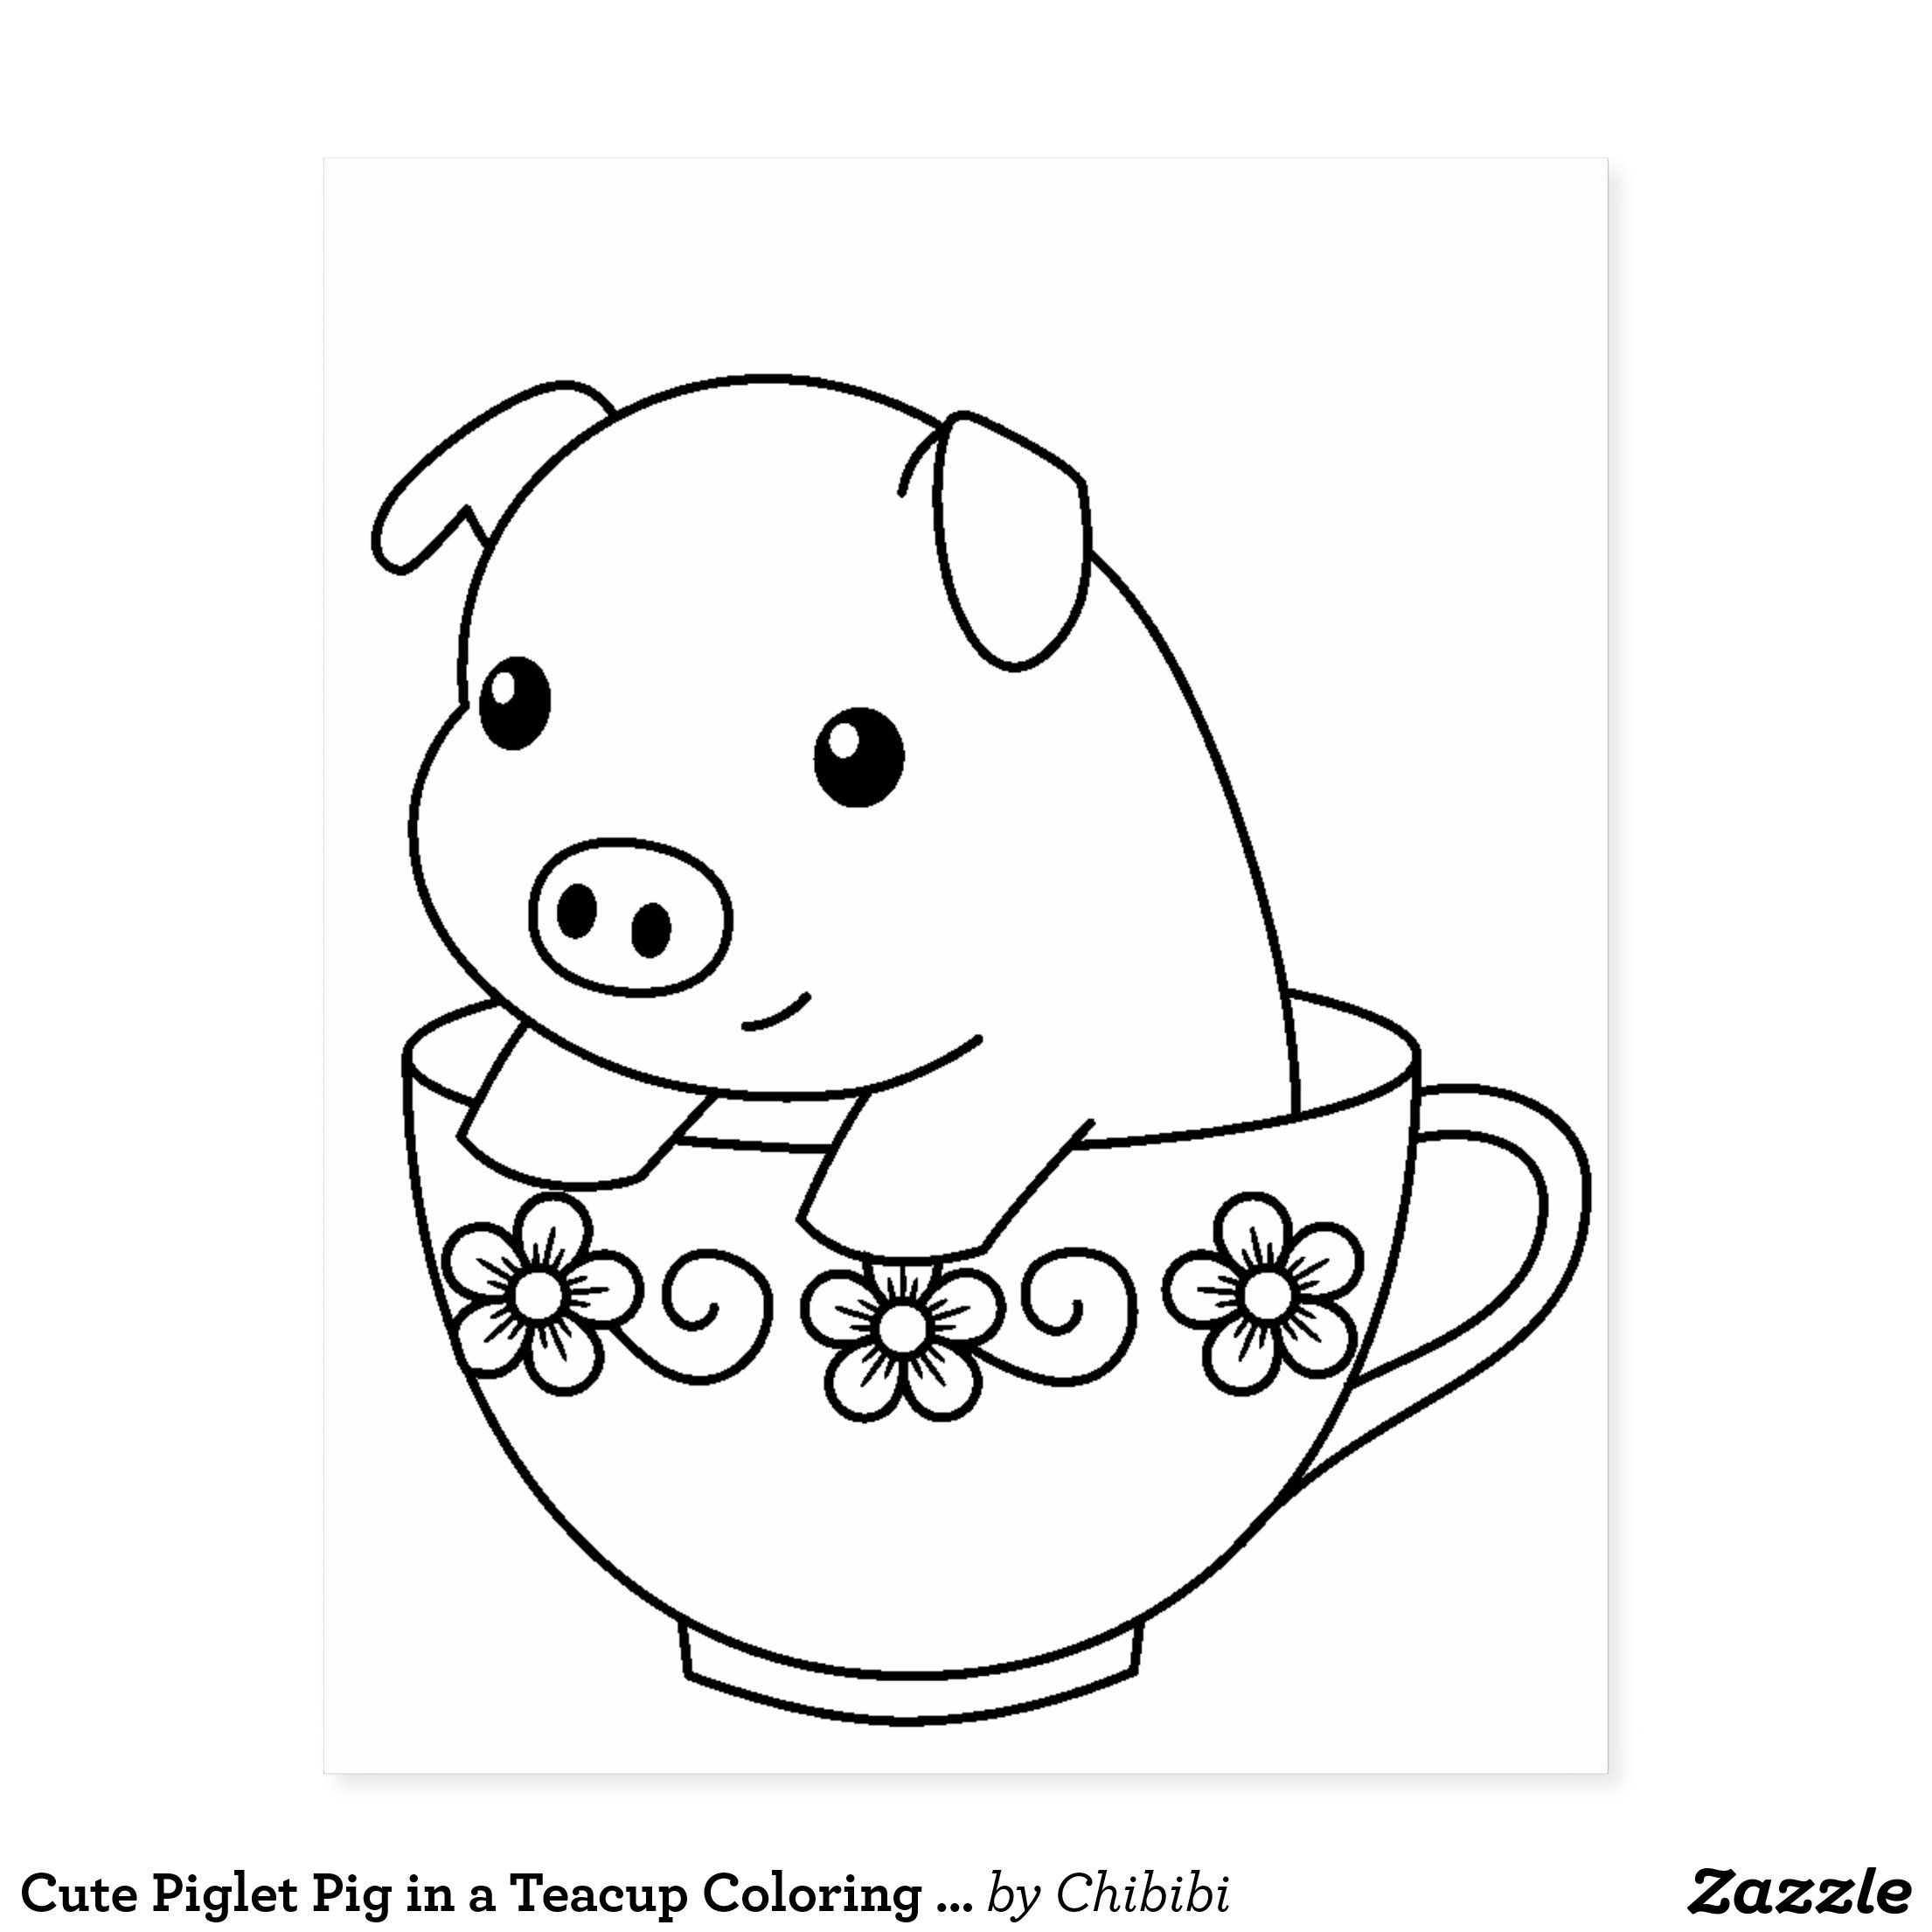 Awesome Piglet Cute Coloring Page Cute Coloring Pages Batman Coloring Pages Piglets Cute